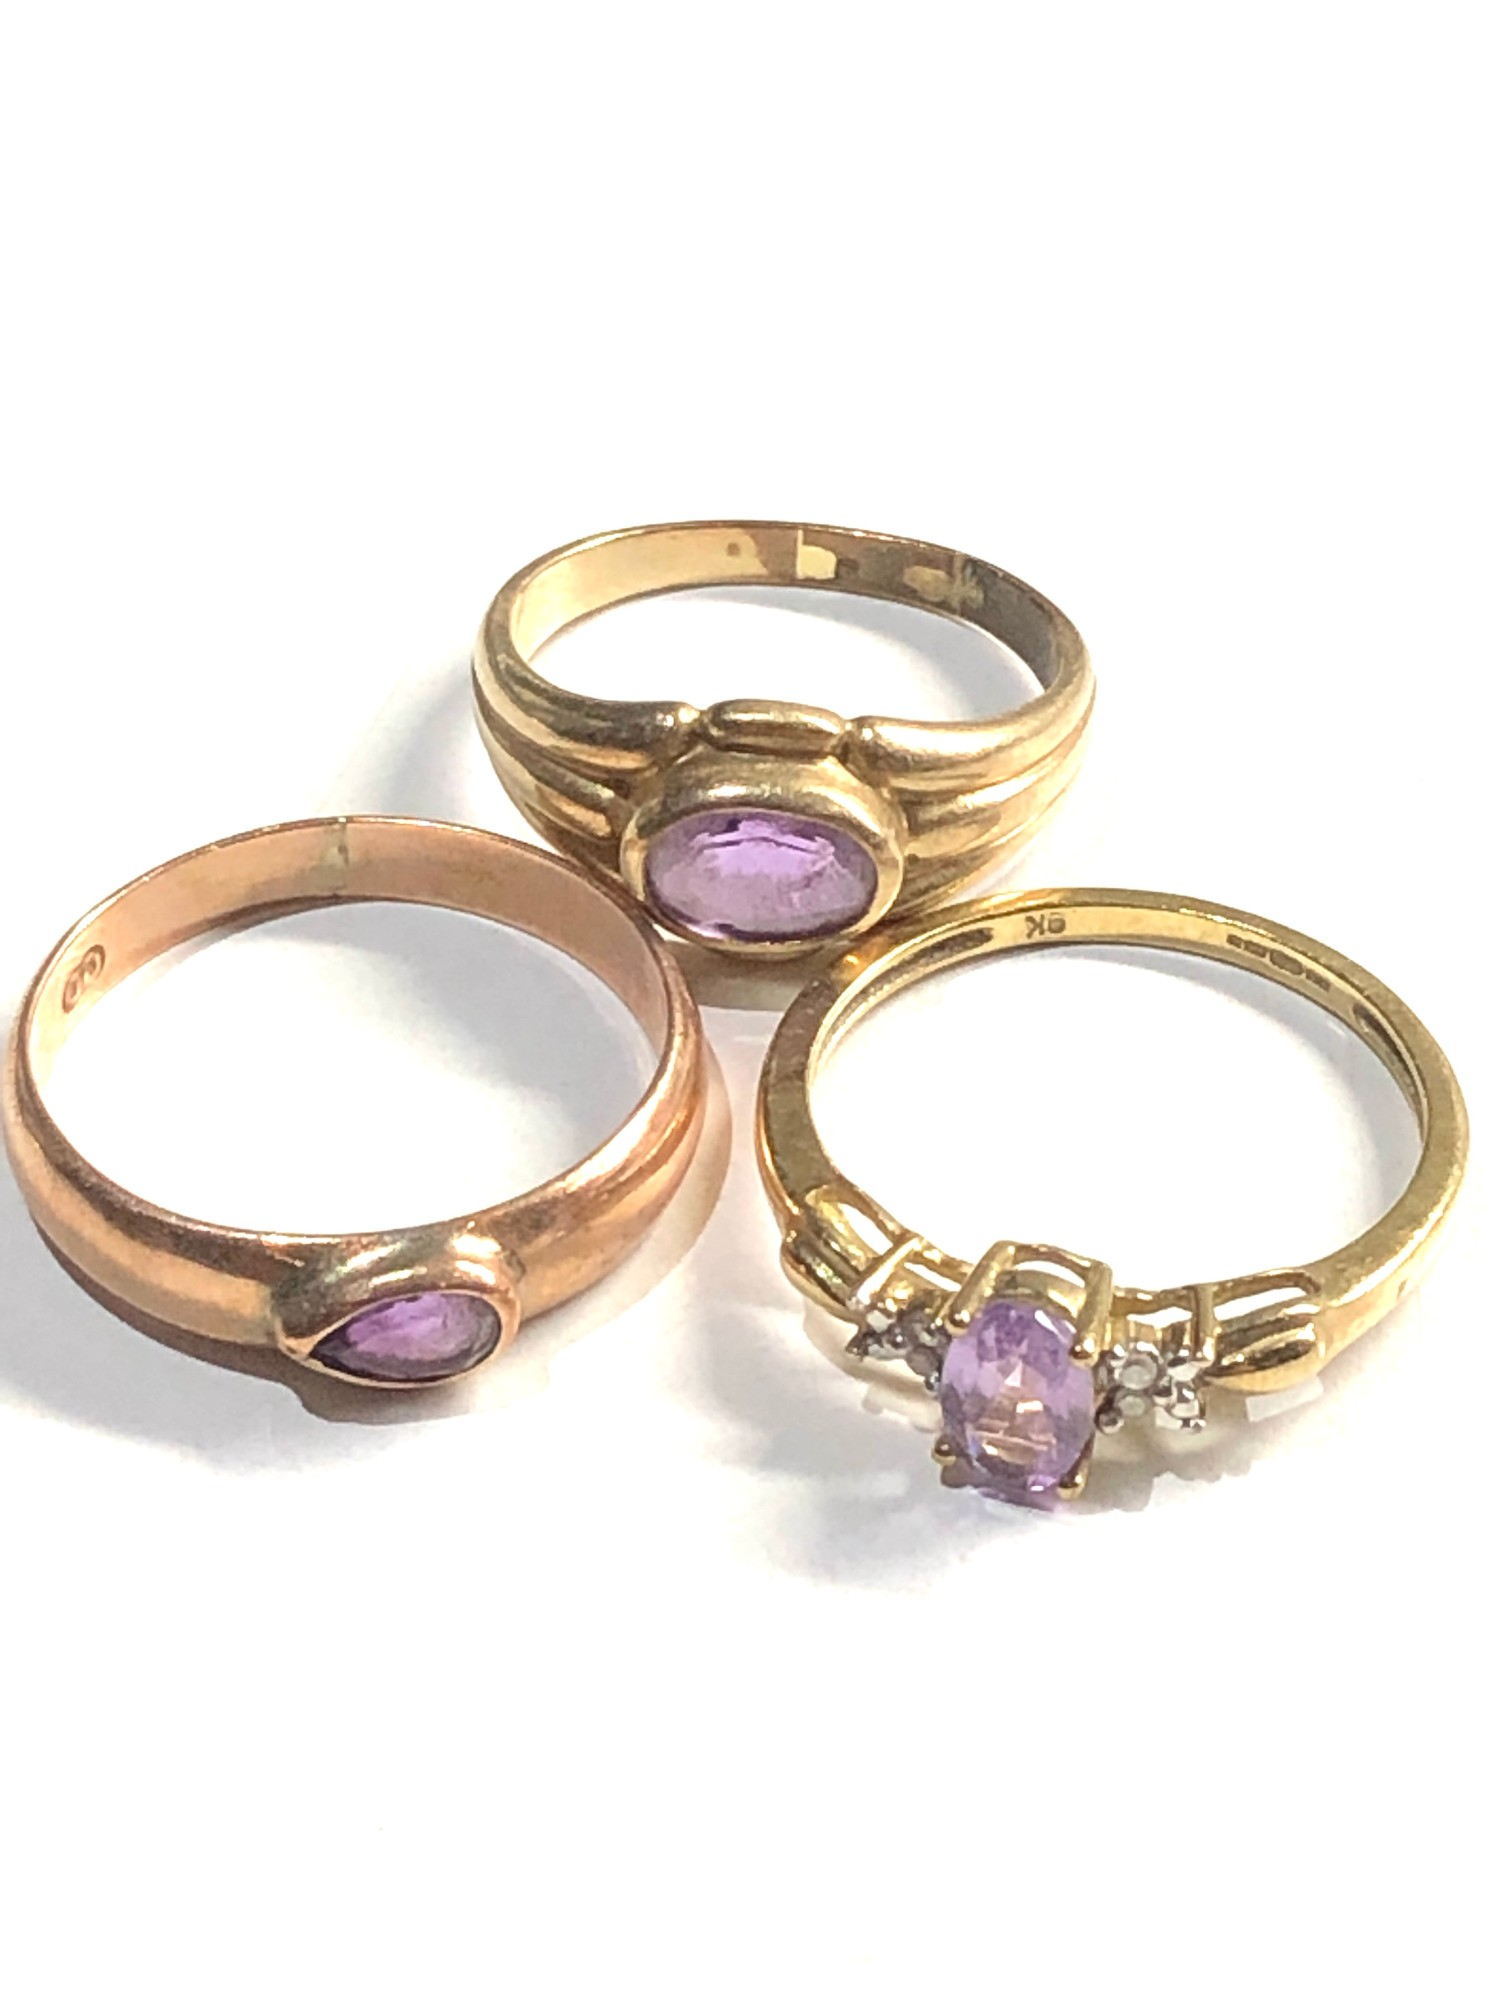 3 x 9ct Gold rings inc. amethyst, solitaire, diamond detail 5.4g - Image 2 of 3